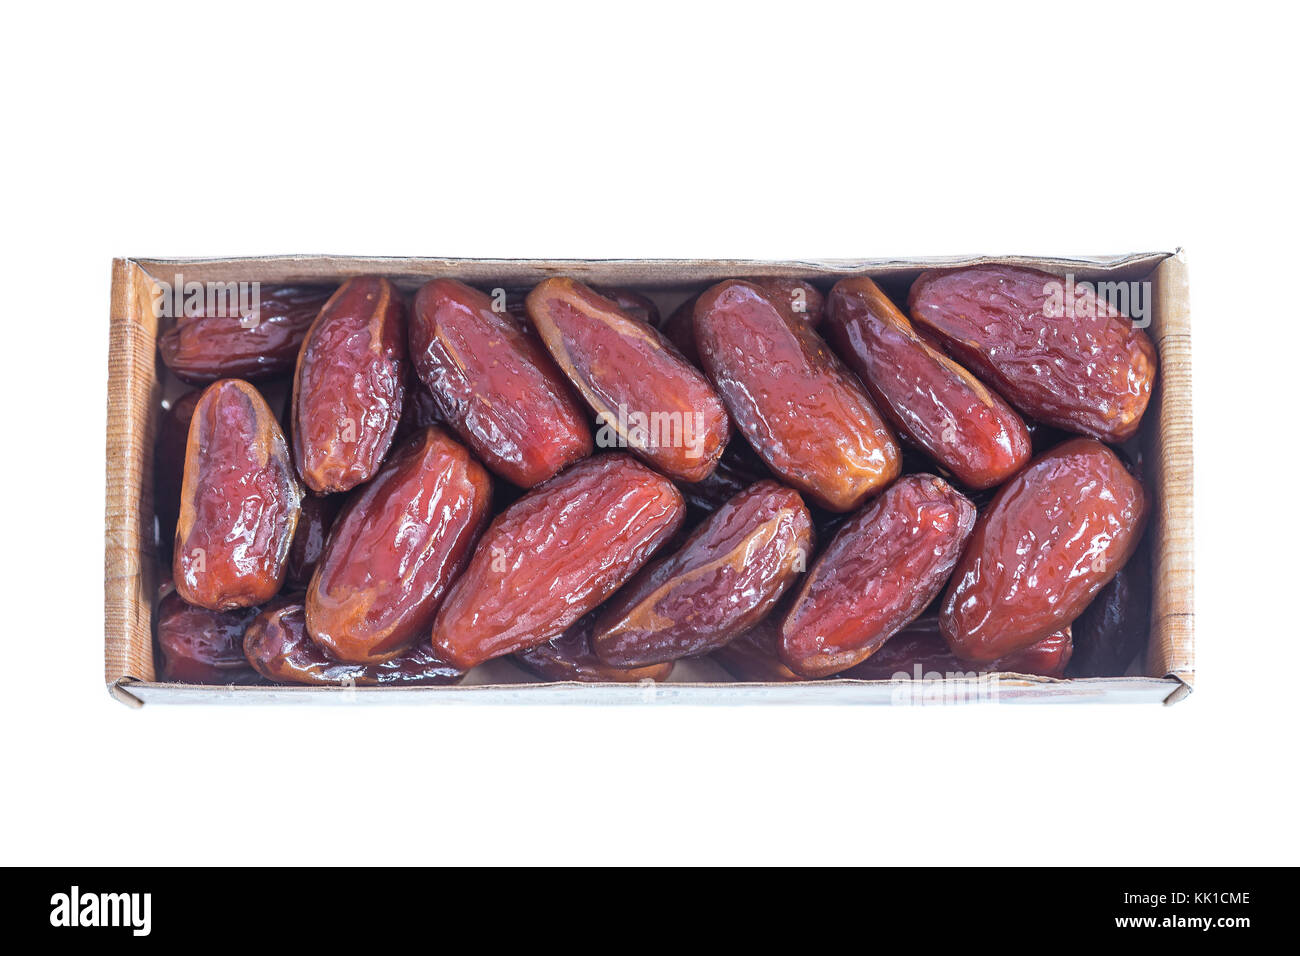 Tunisian dactylifera dried exotic fruit packed on white background Date palm dried fruit packed in original package - Stock Image